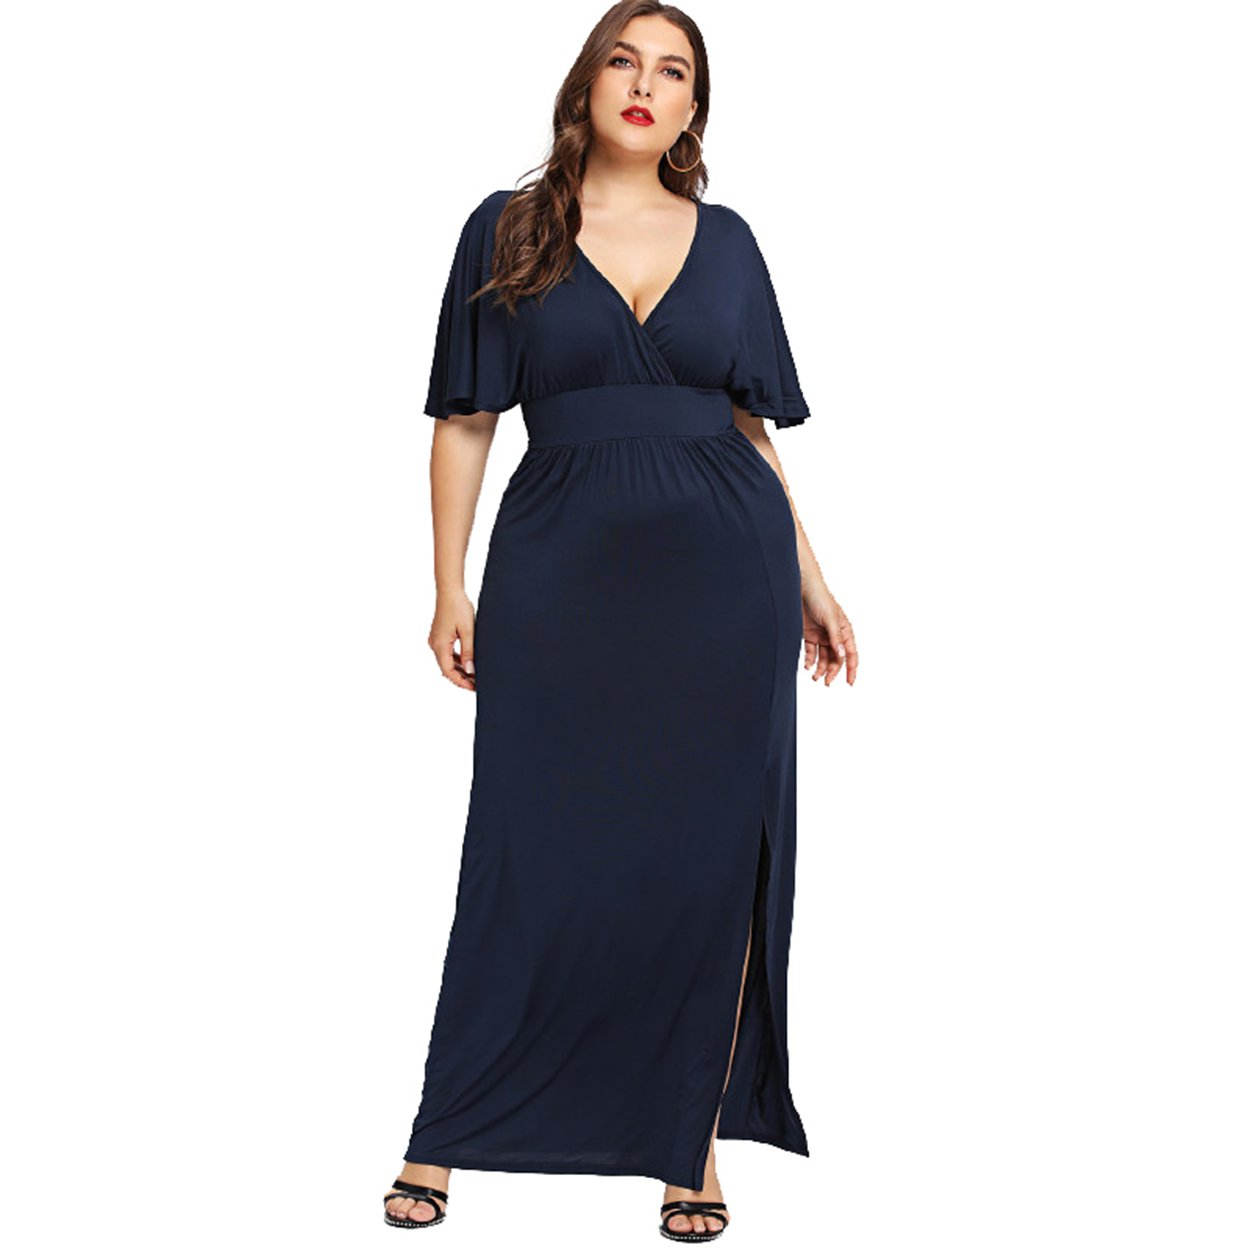 d969bfe6a4 ESPRLIA Women s Empire Waist Short Sleeve Plus Size Maxi Casual Dress with  Belts at Amazon Women s Clothing store